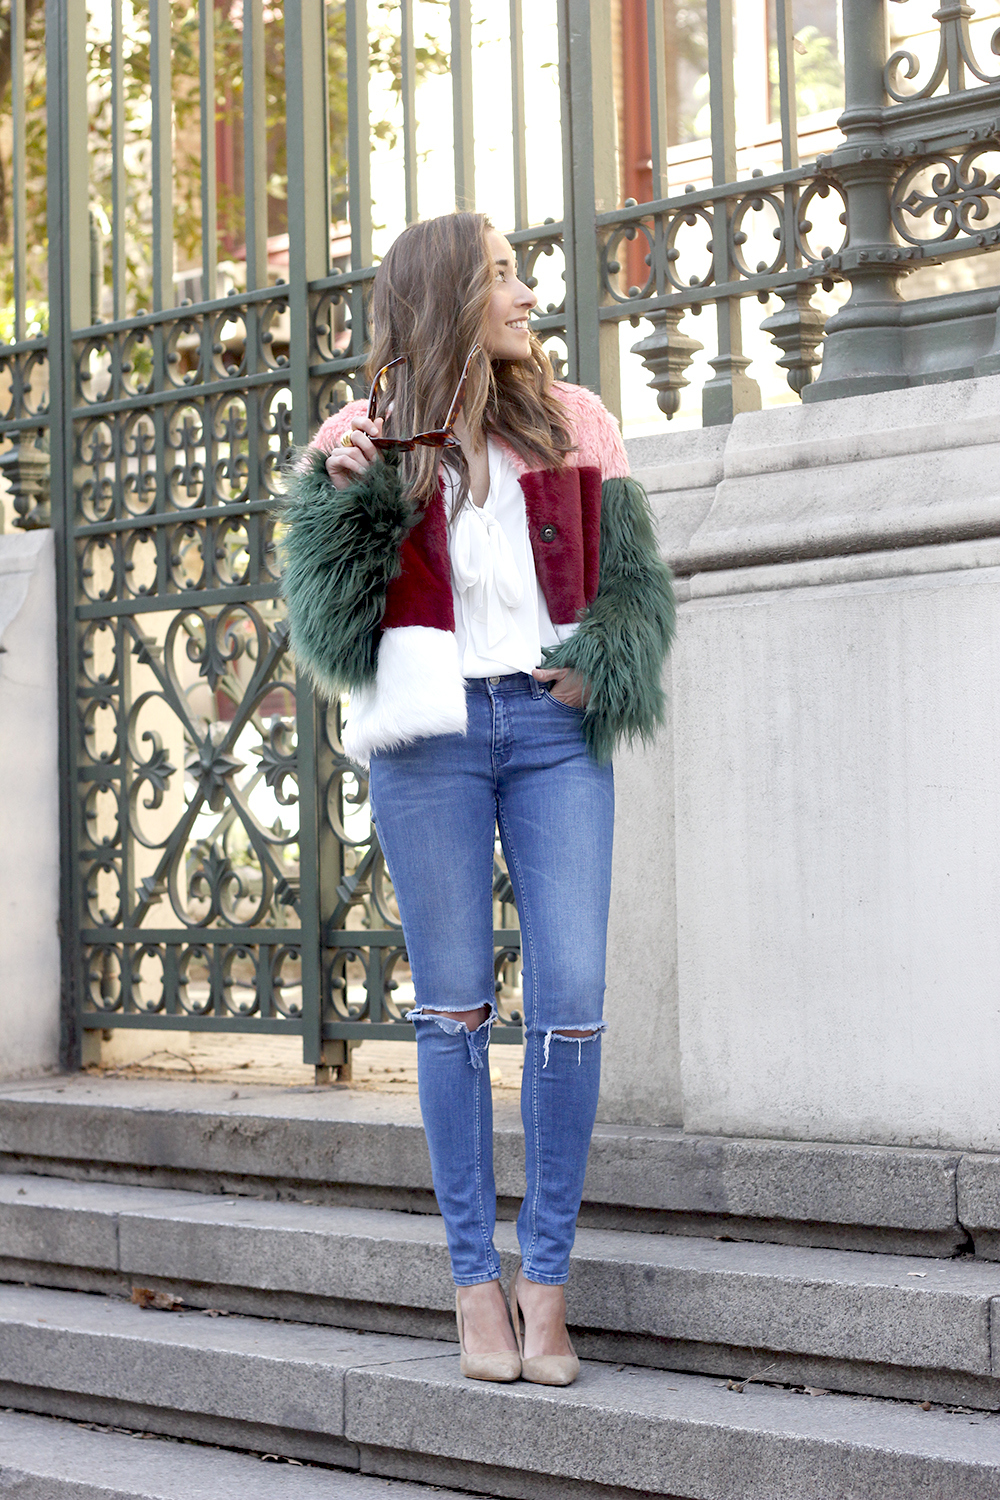 Faur fux coat white shirt ripped jeans heels street style fashion outfit access02